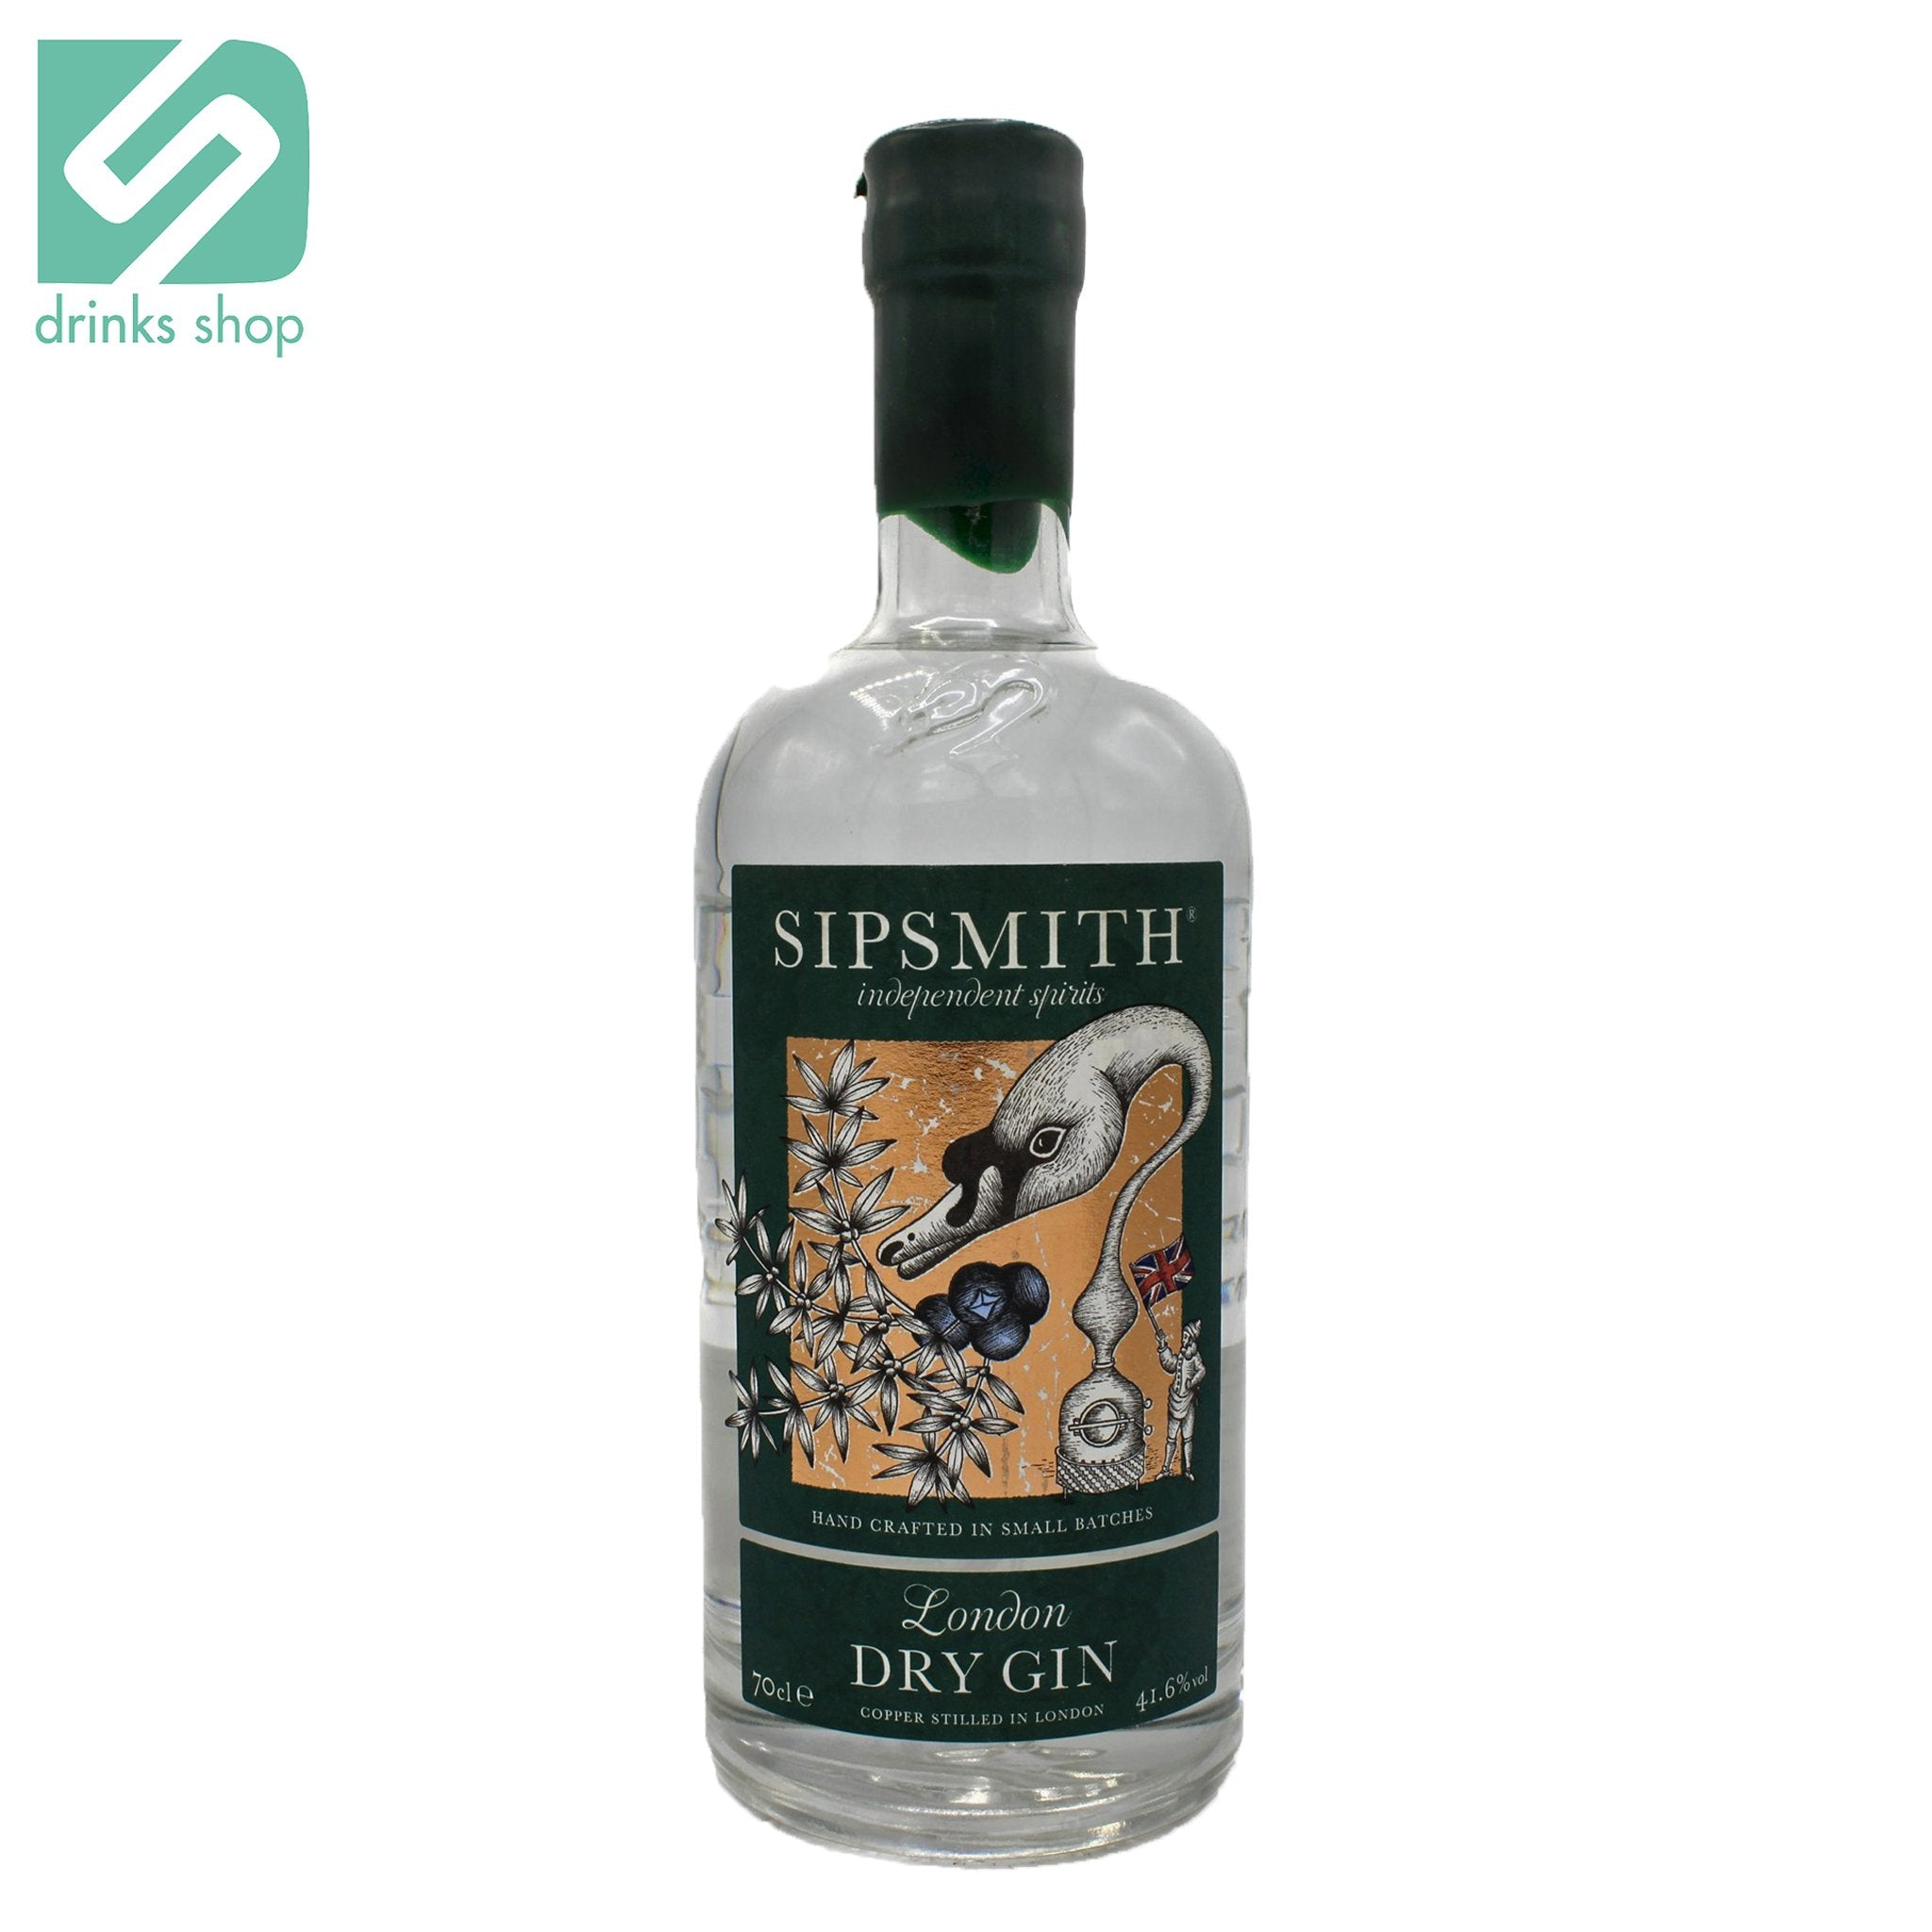 Sipsmith London Dry Gin 70cl, Gin - Image 0